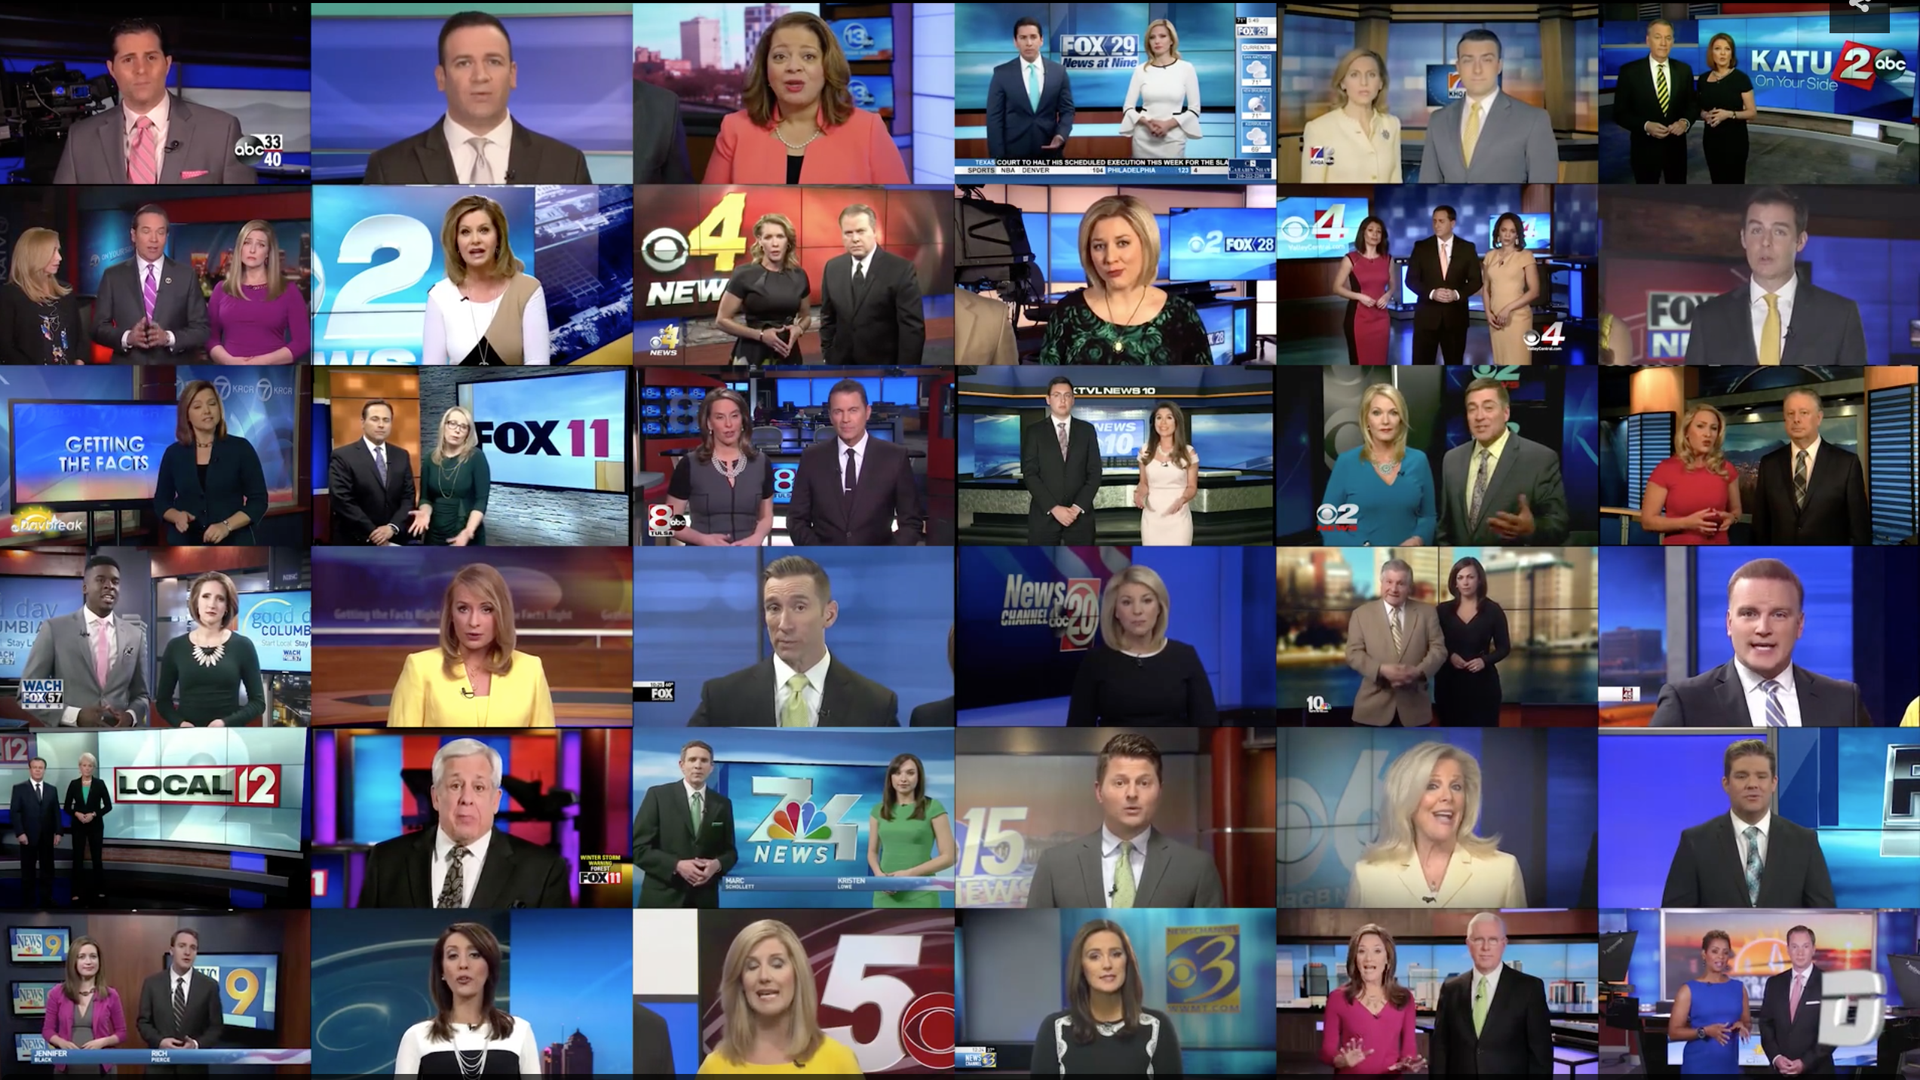 Sinclair broadcasters